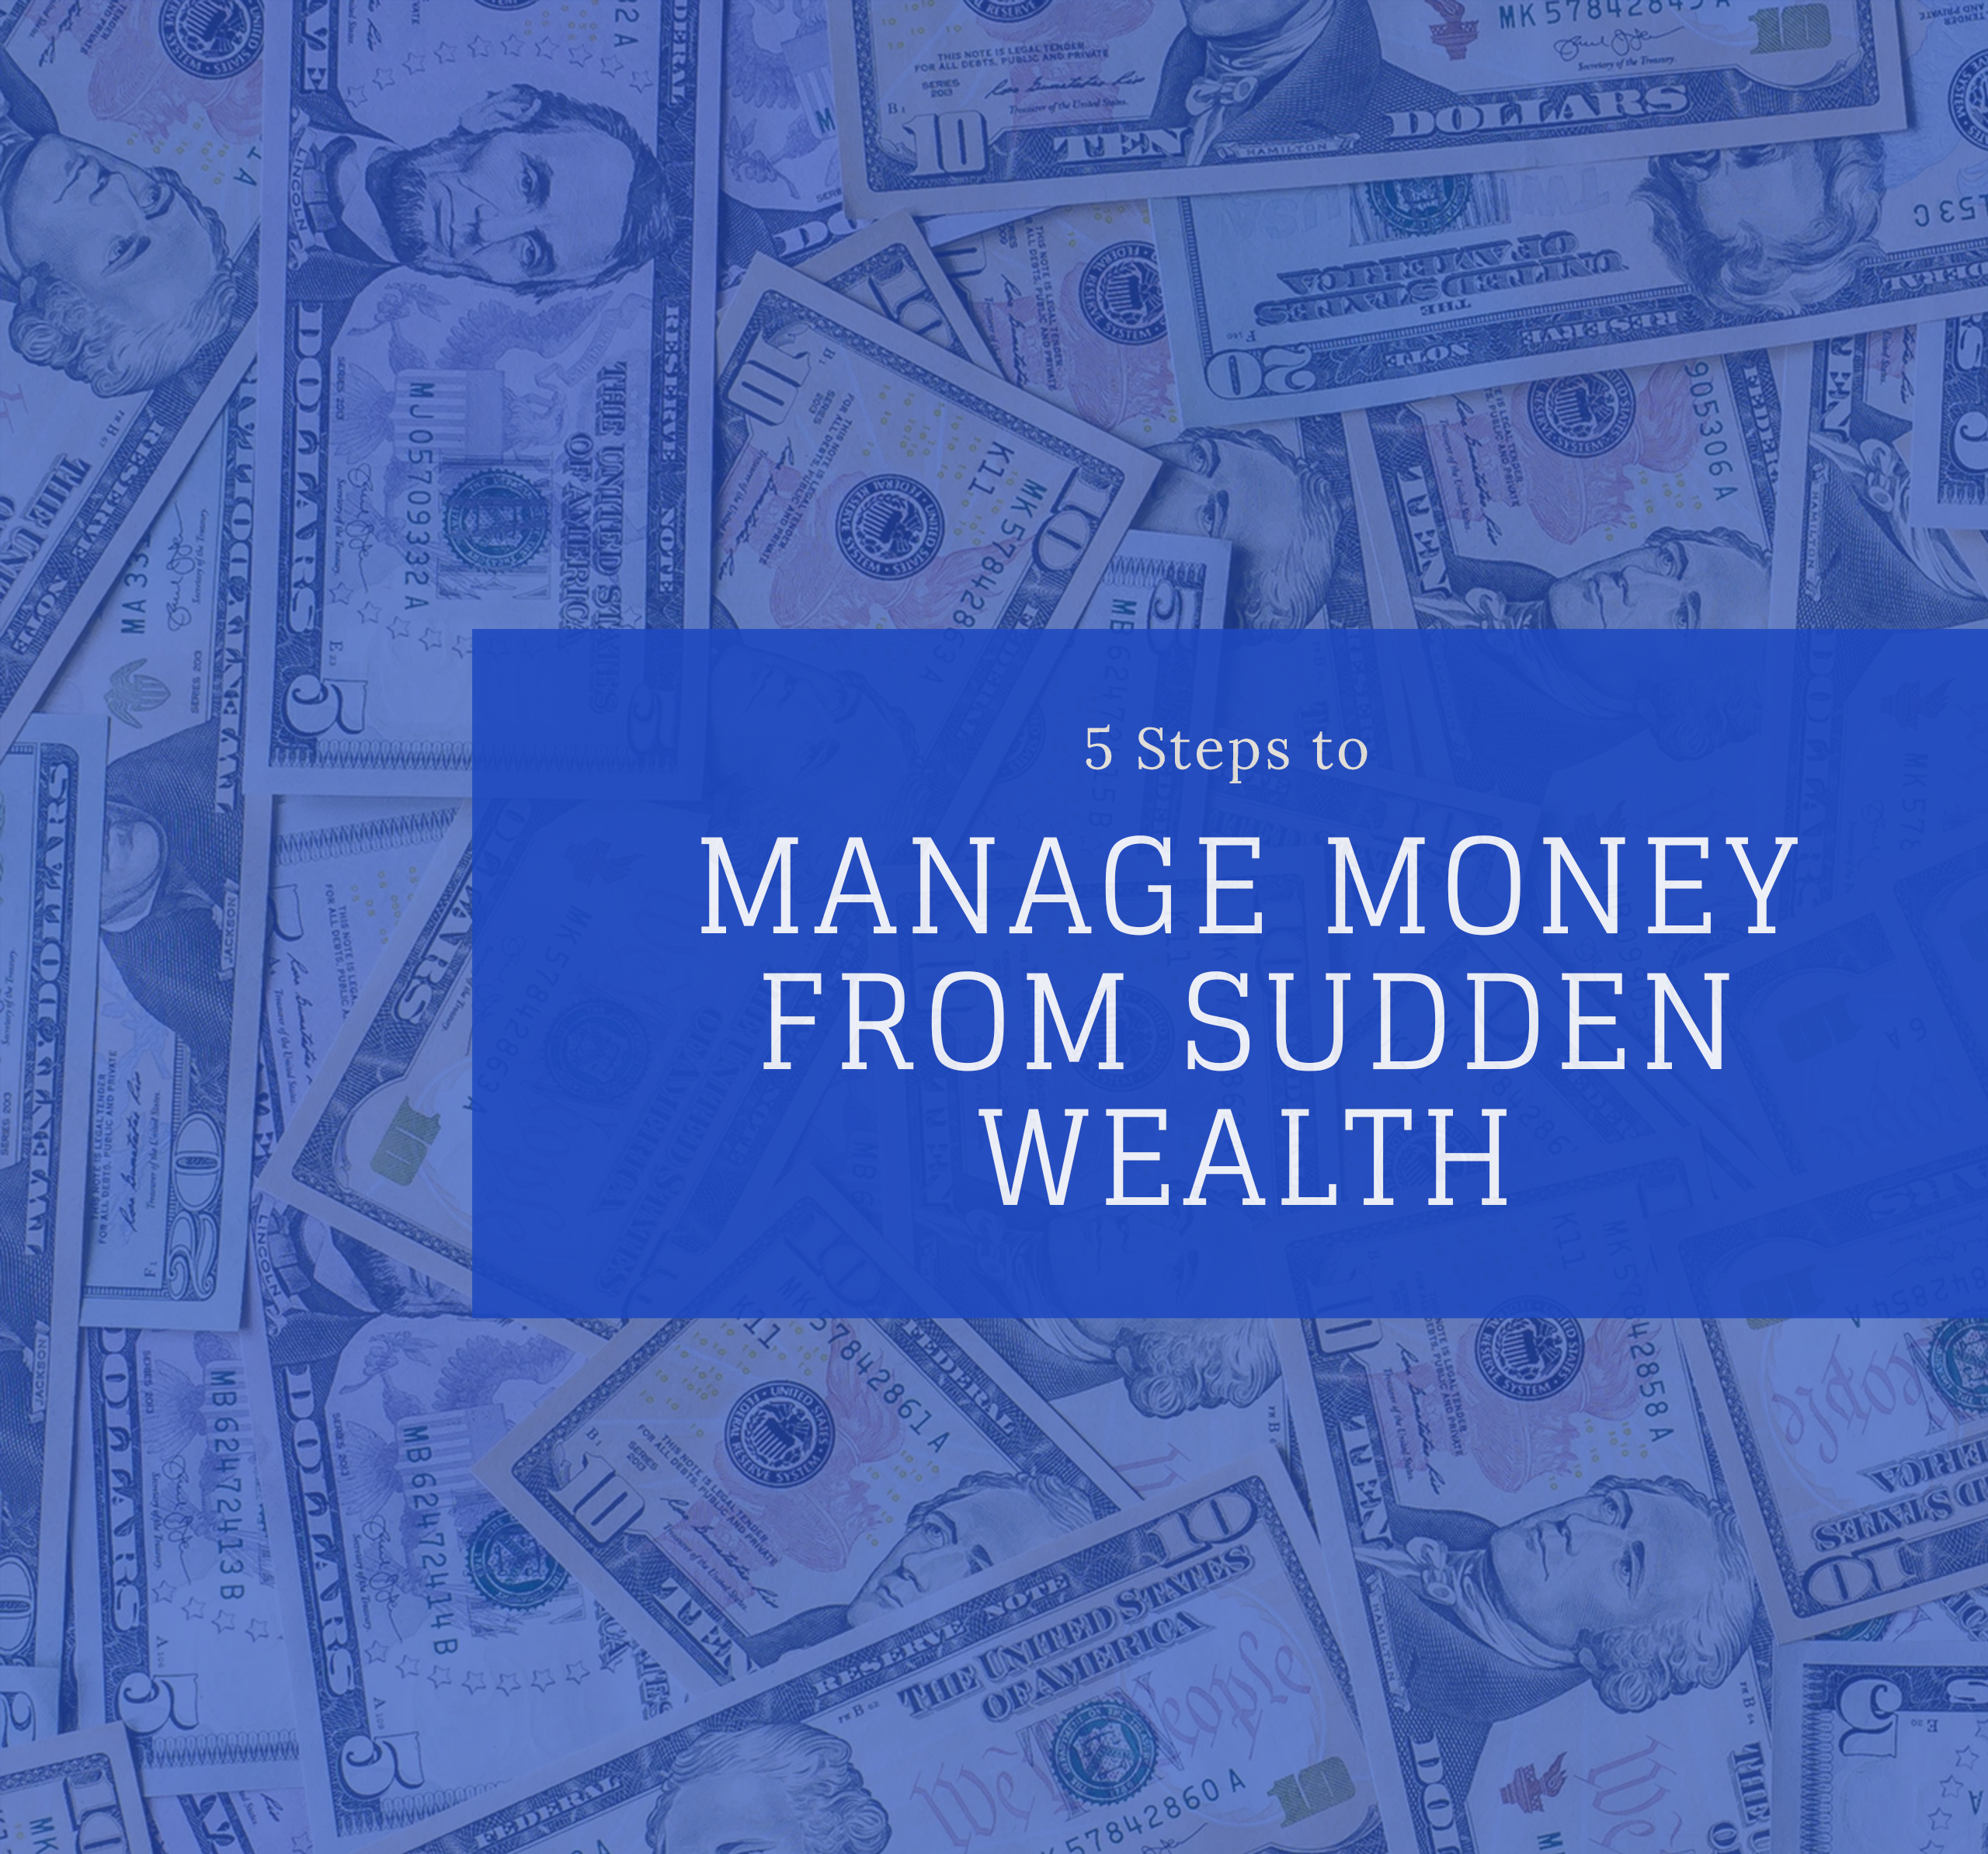 5 Steps to Manage Money From Sudden Wealth